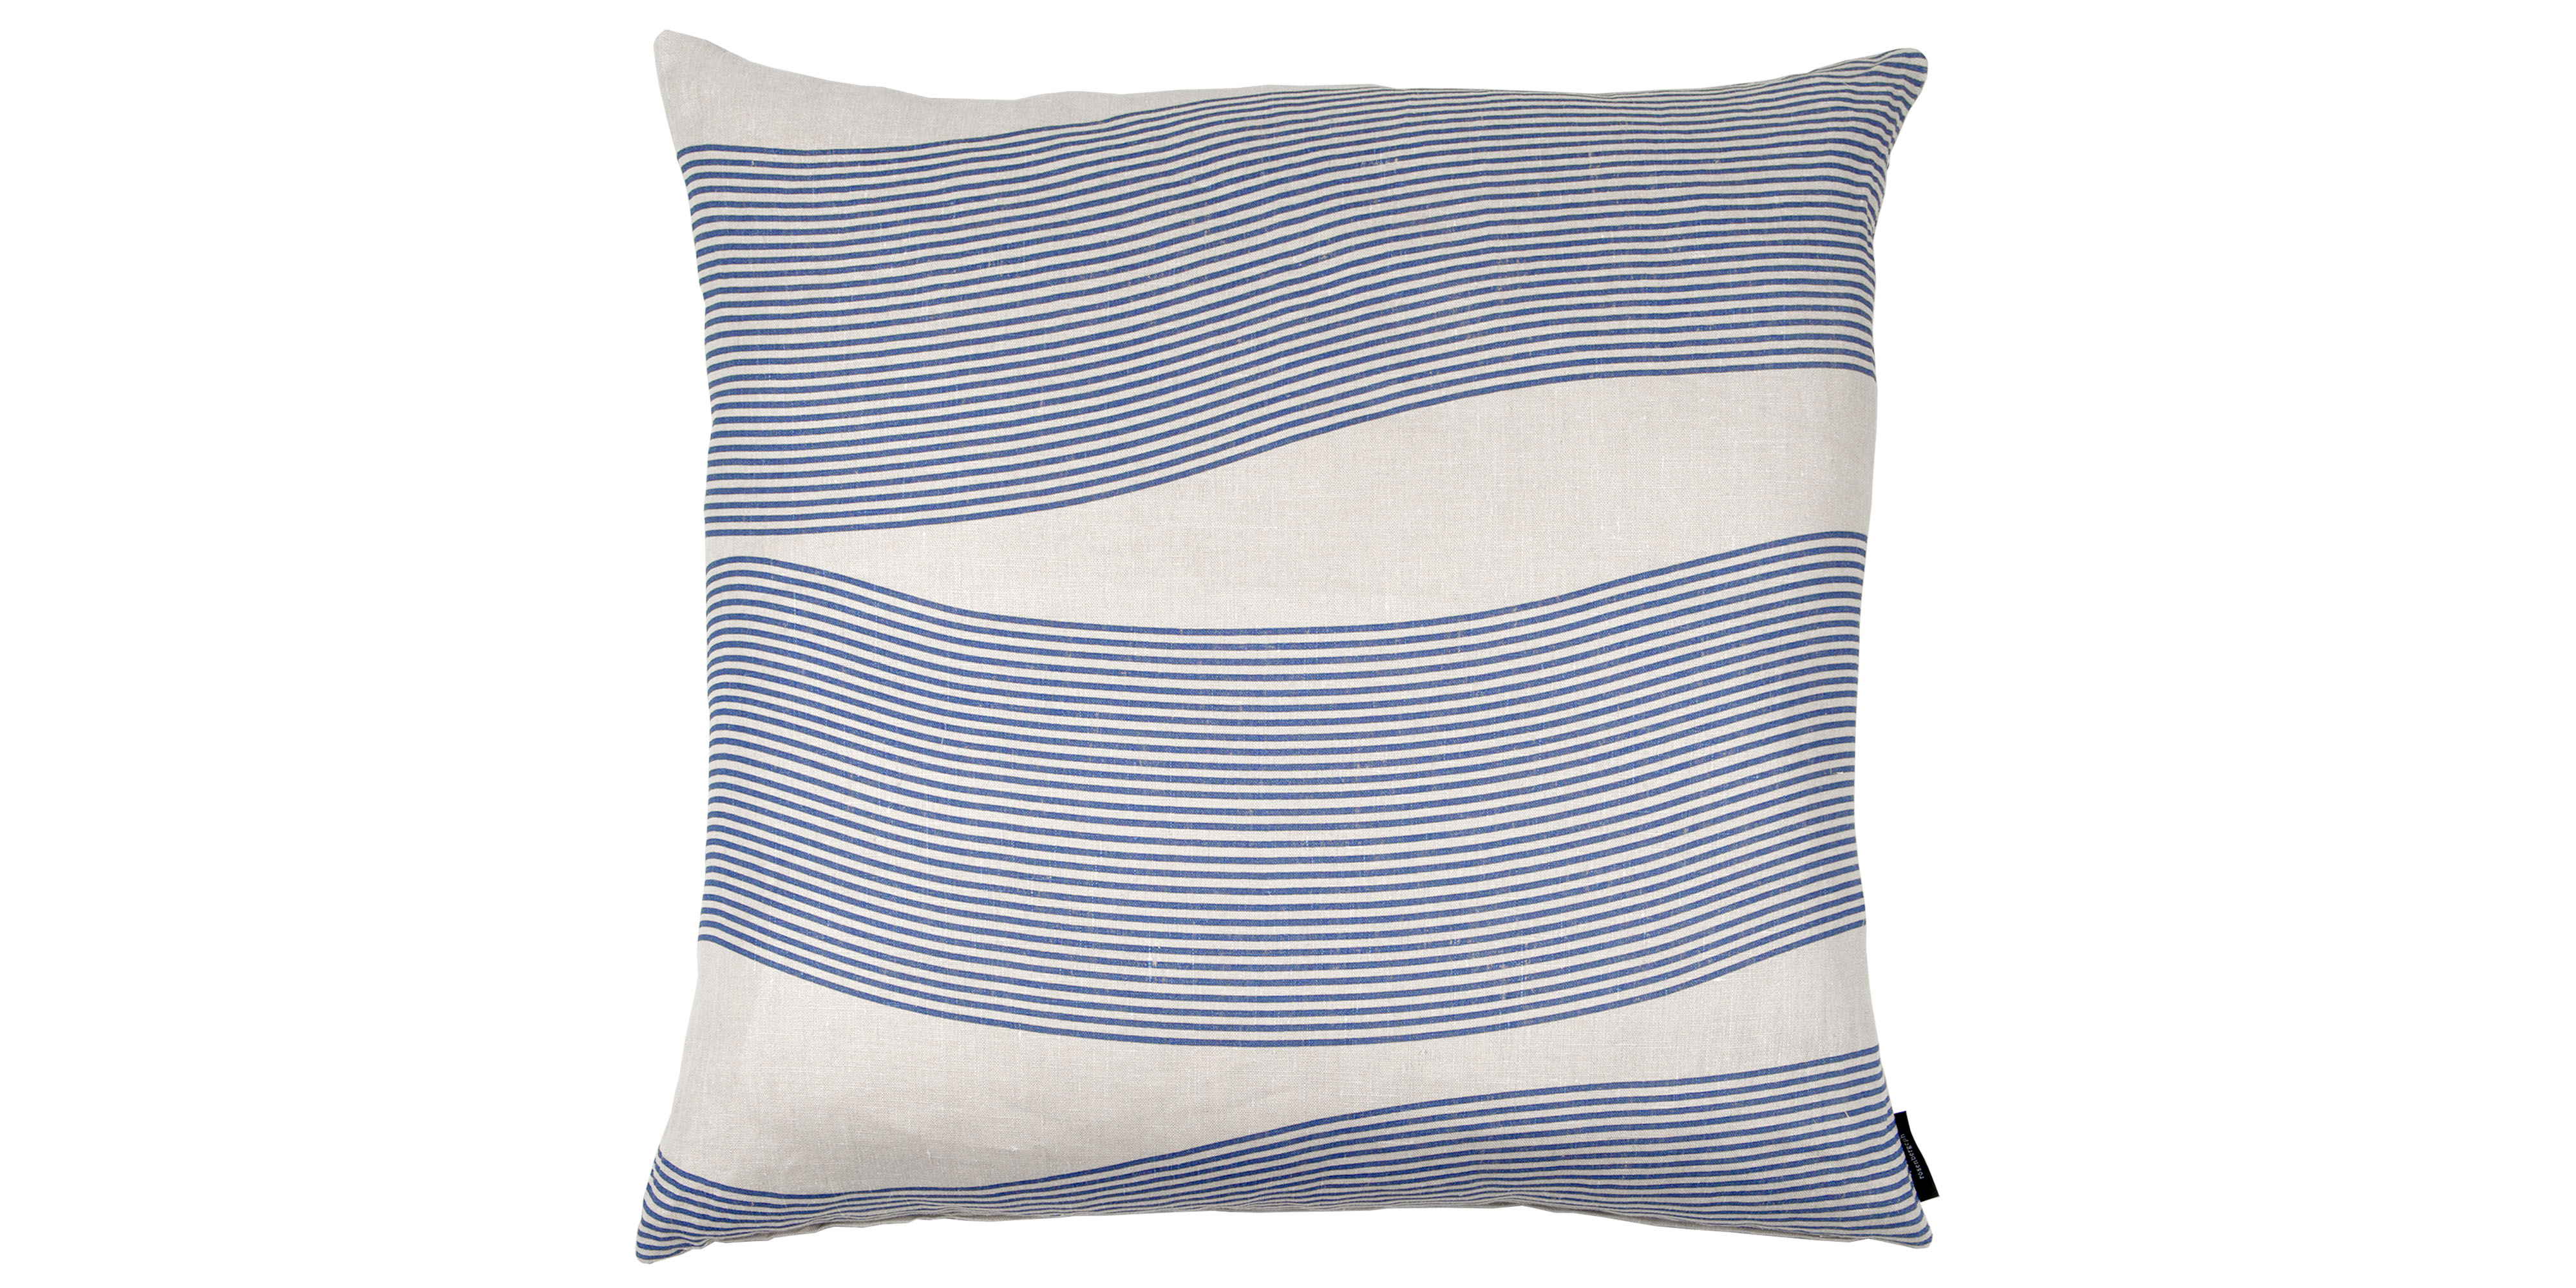 Floor, 80x80cm linen cushion in River pattern, design Anne Rosenberg, RosenbergCph